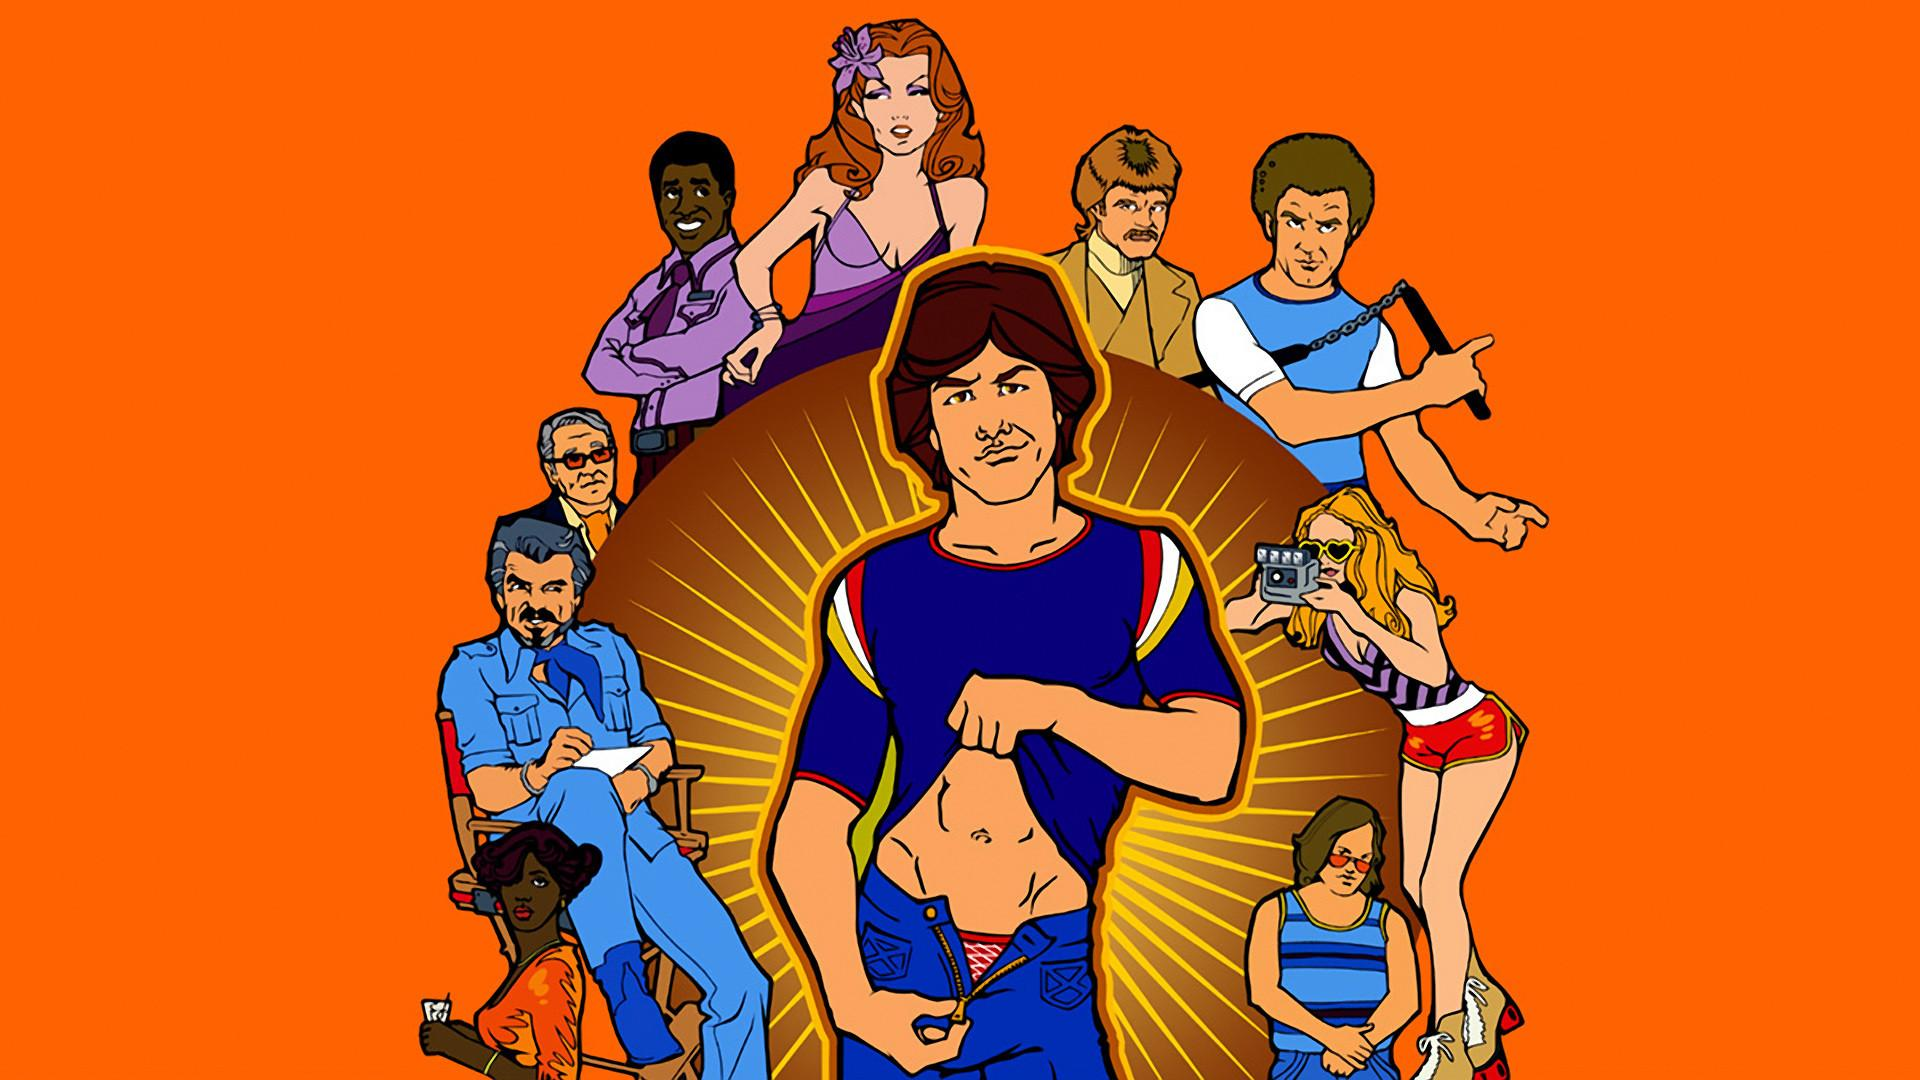 boogie nights depiction endorsement and the wounded humanity of depiction